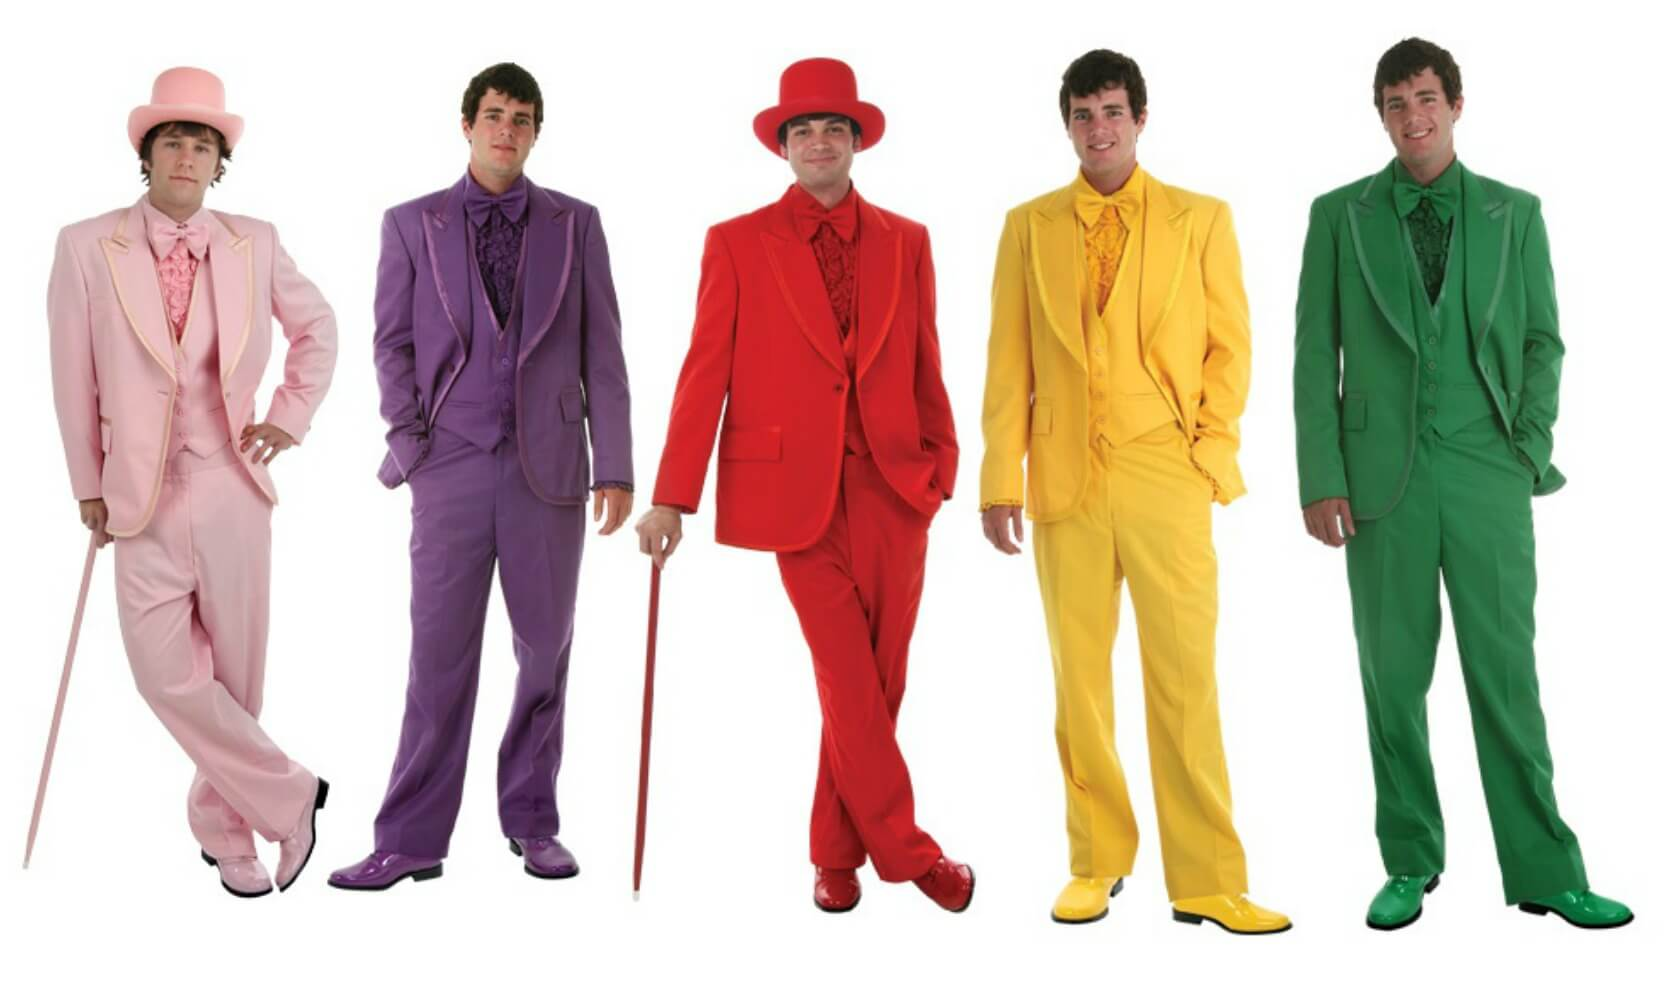 Bright Colored Tuxedos and Suits